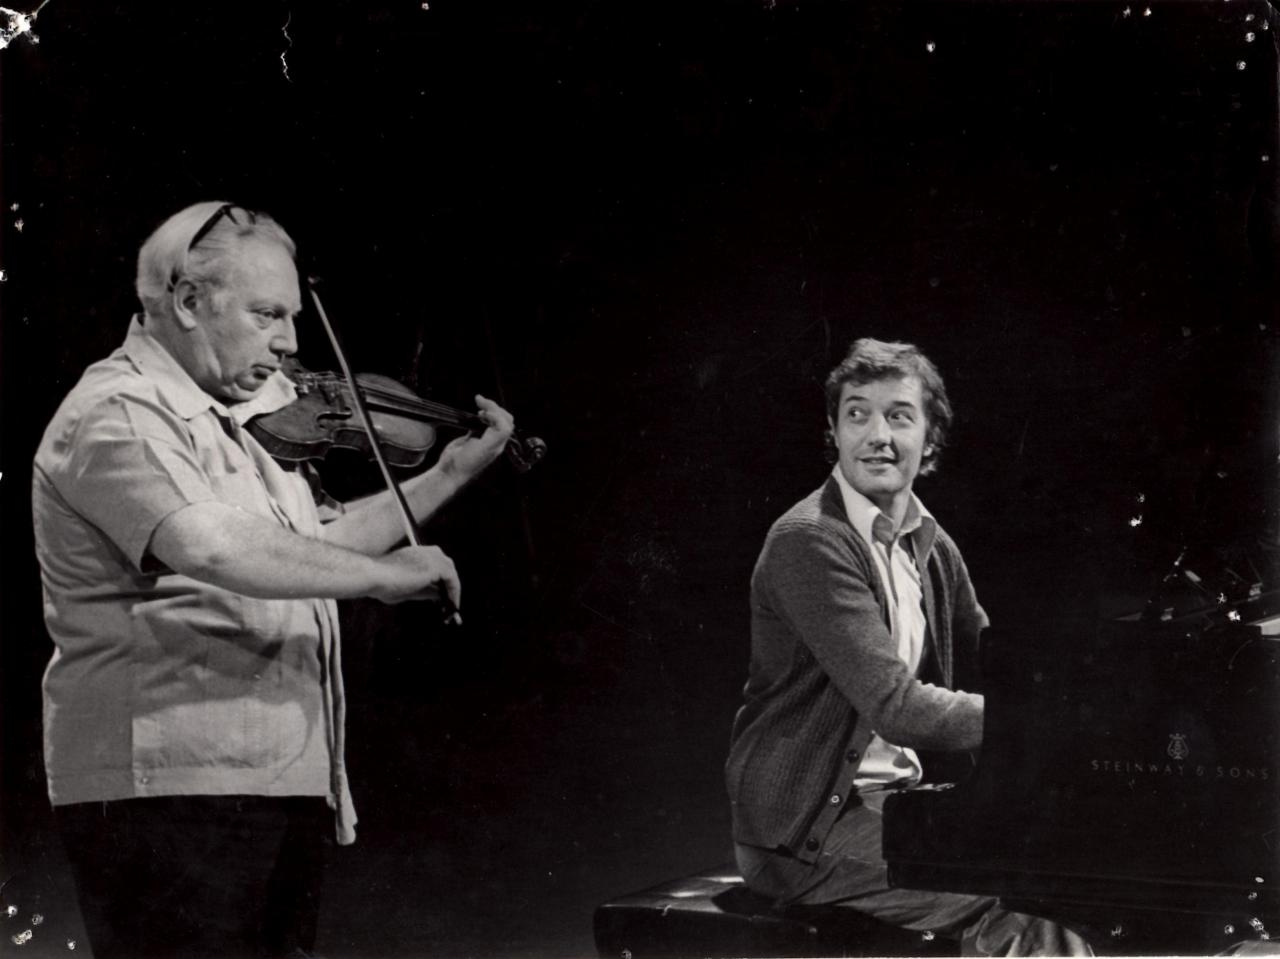 With Isaac STERN